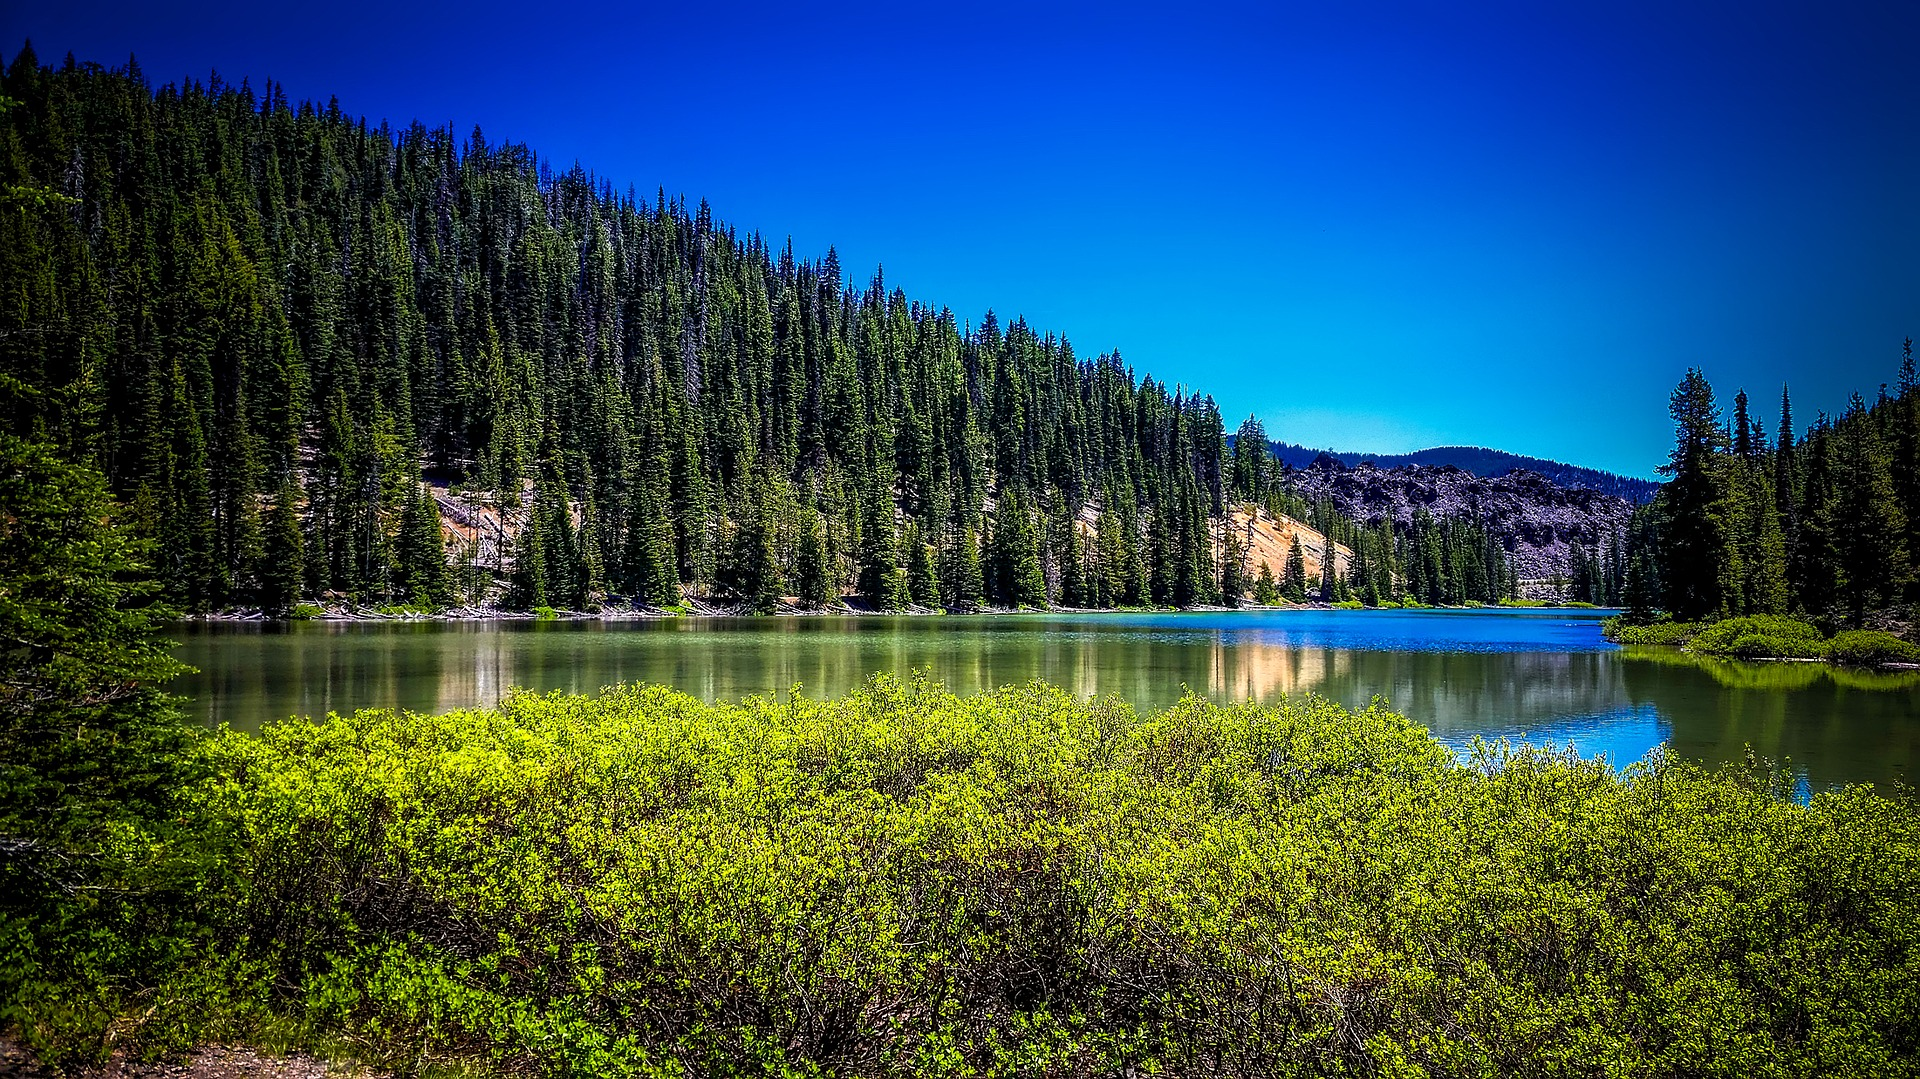 Placid, pretty lake surrounded by tall trees.